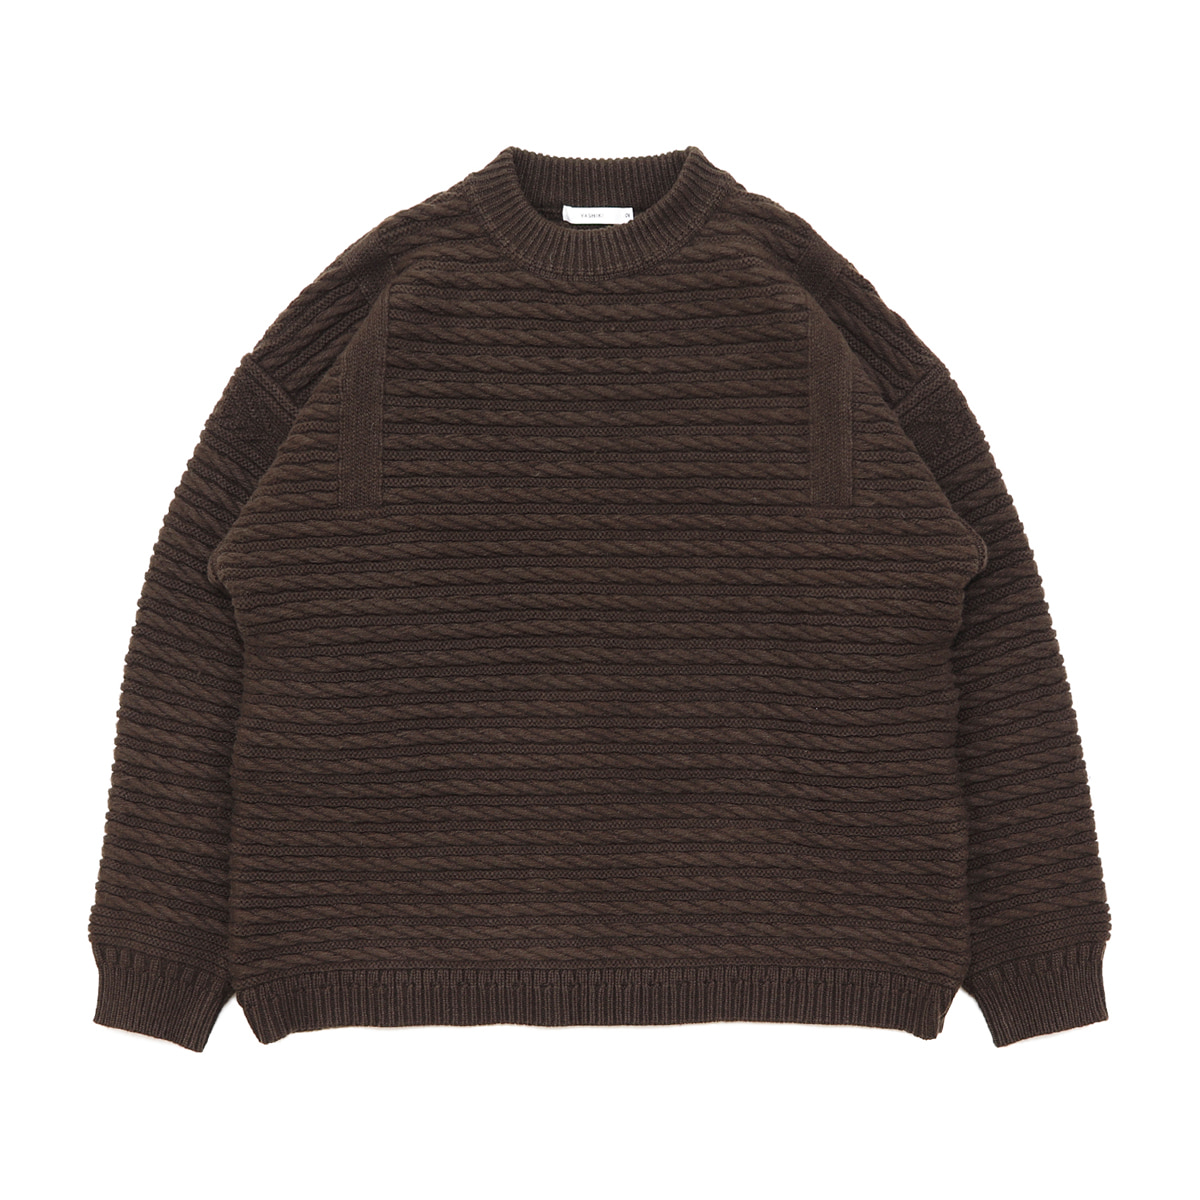 [YASHIKI] WARANAWA KNIT 'BROWN'